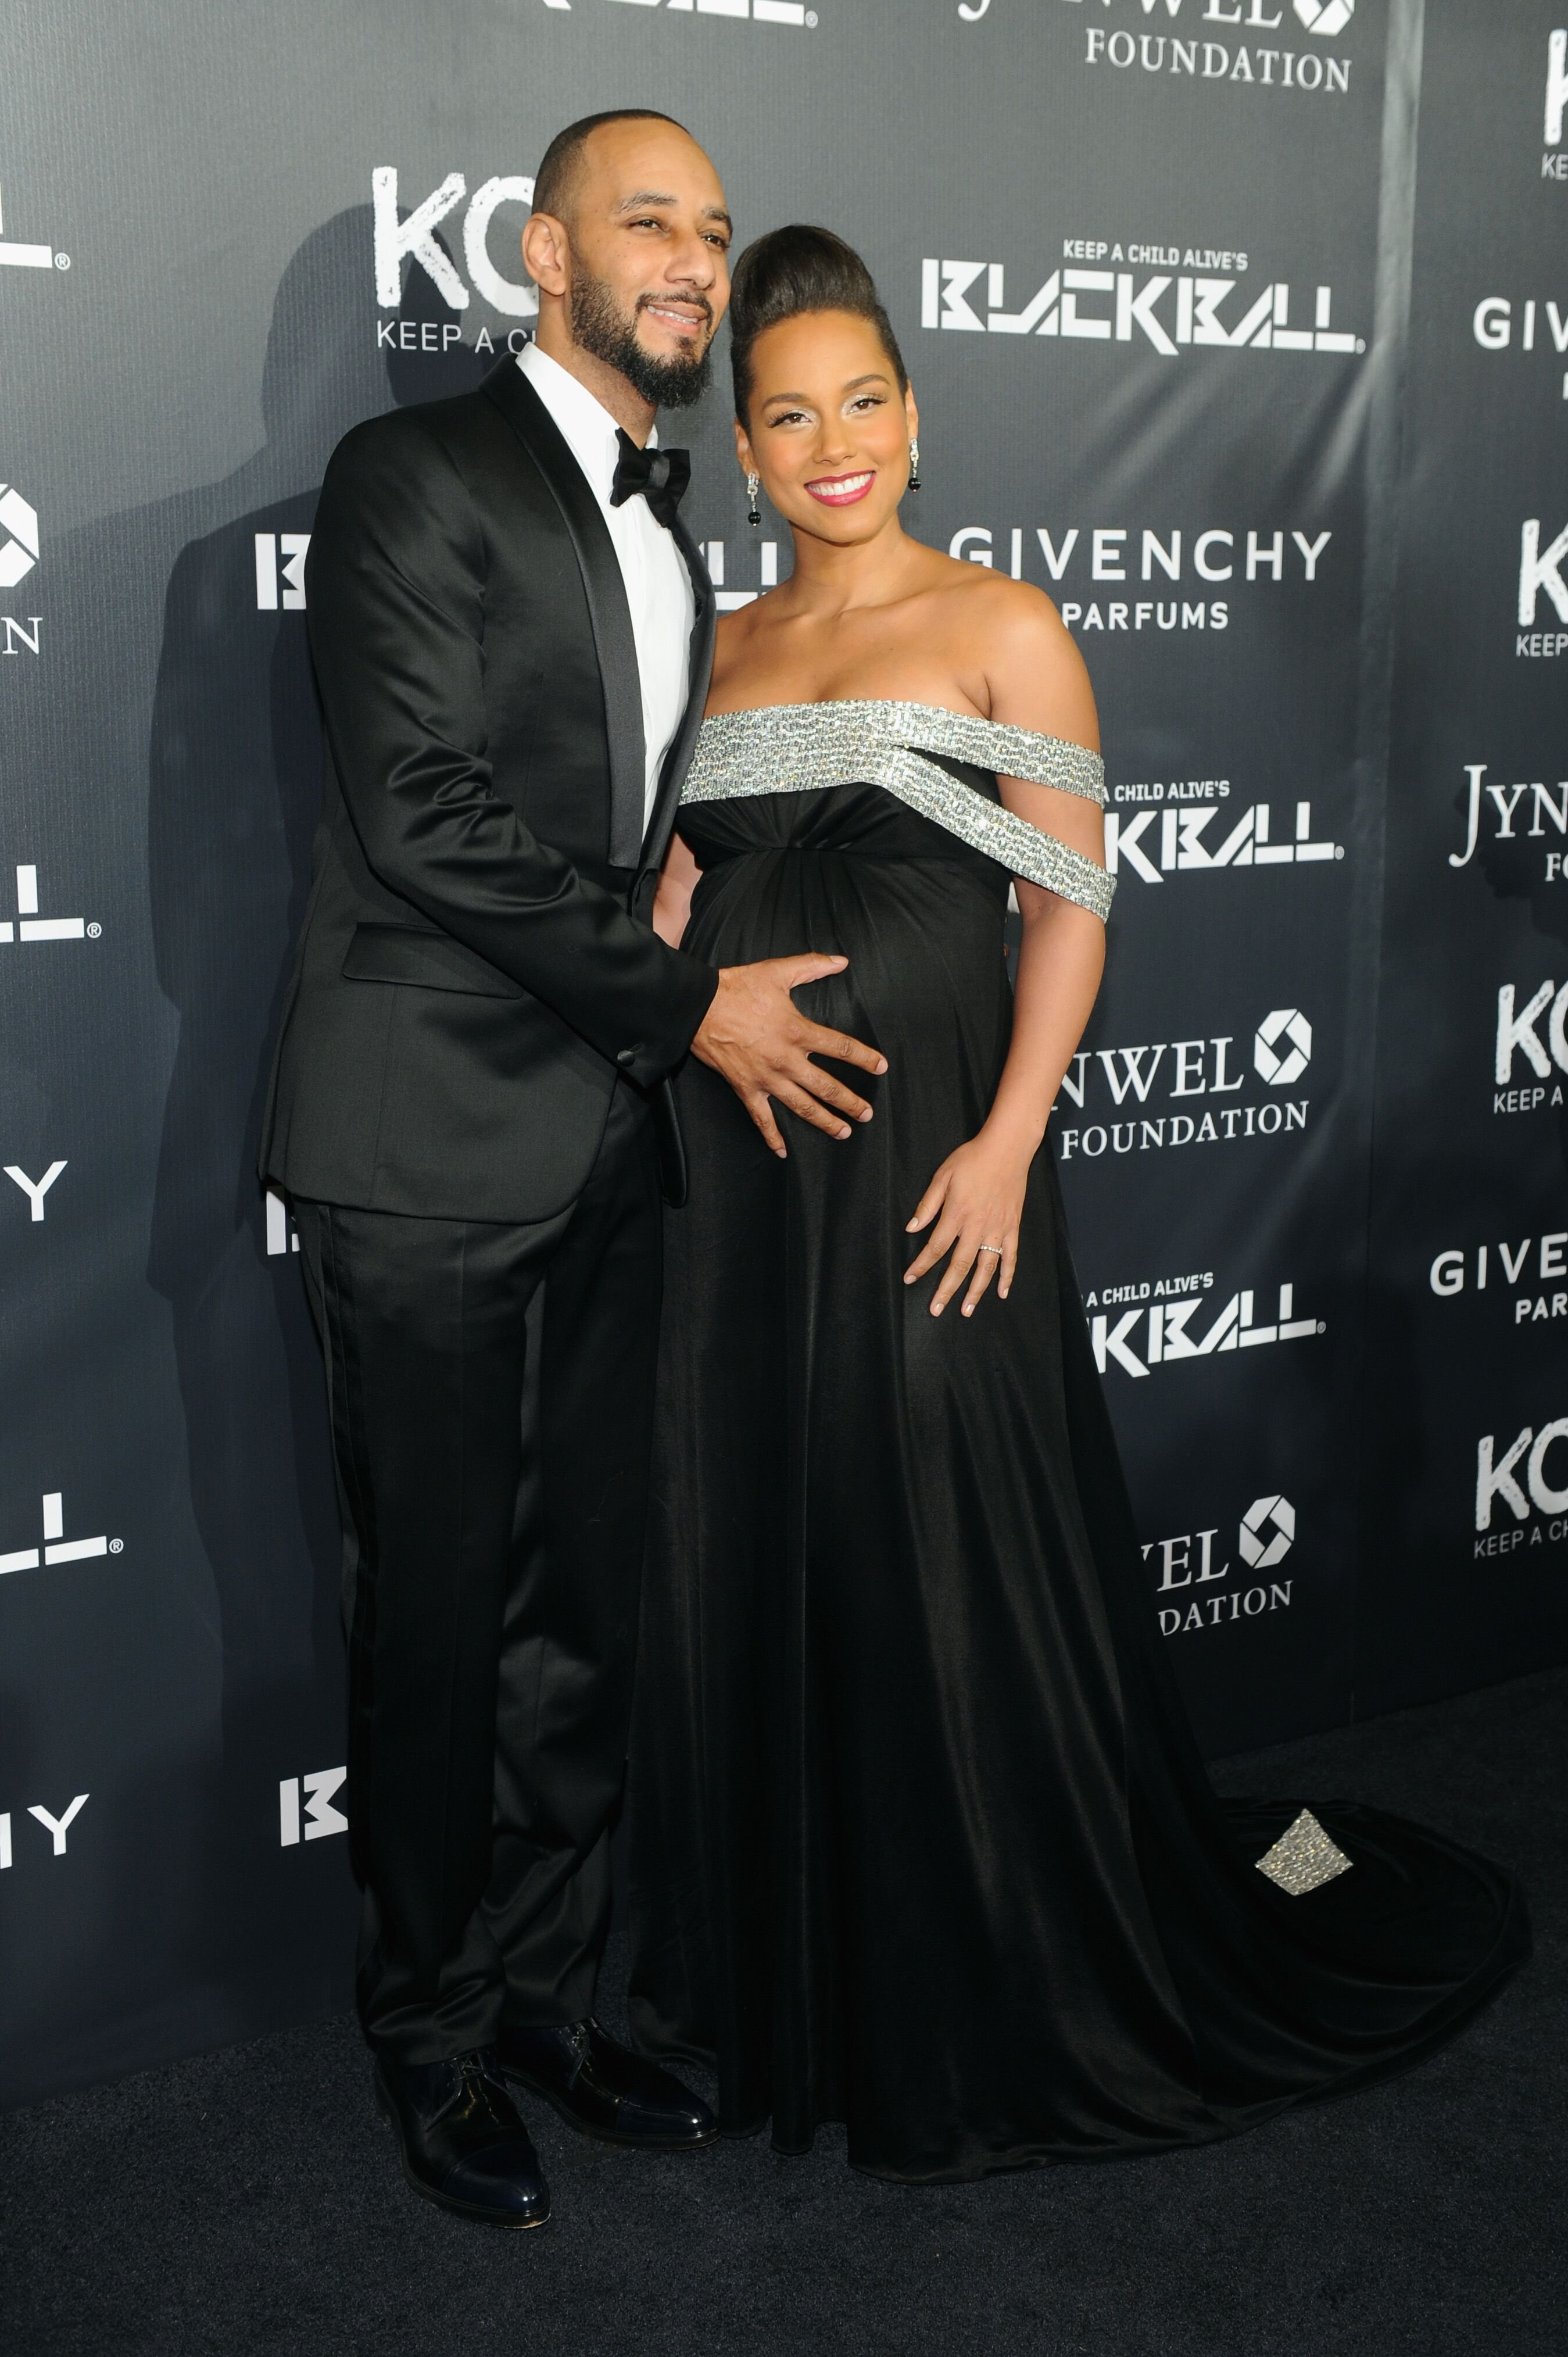 wizz Beats and Alicia Keys at the 9th annual Keep A Child Alive Black Ball in 2014   Source: Getty Images